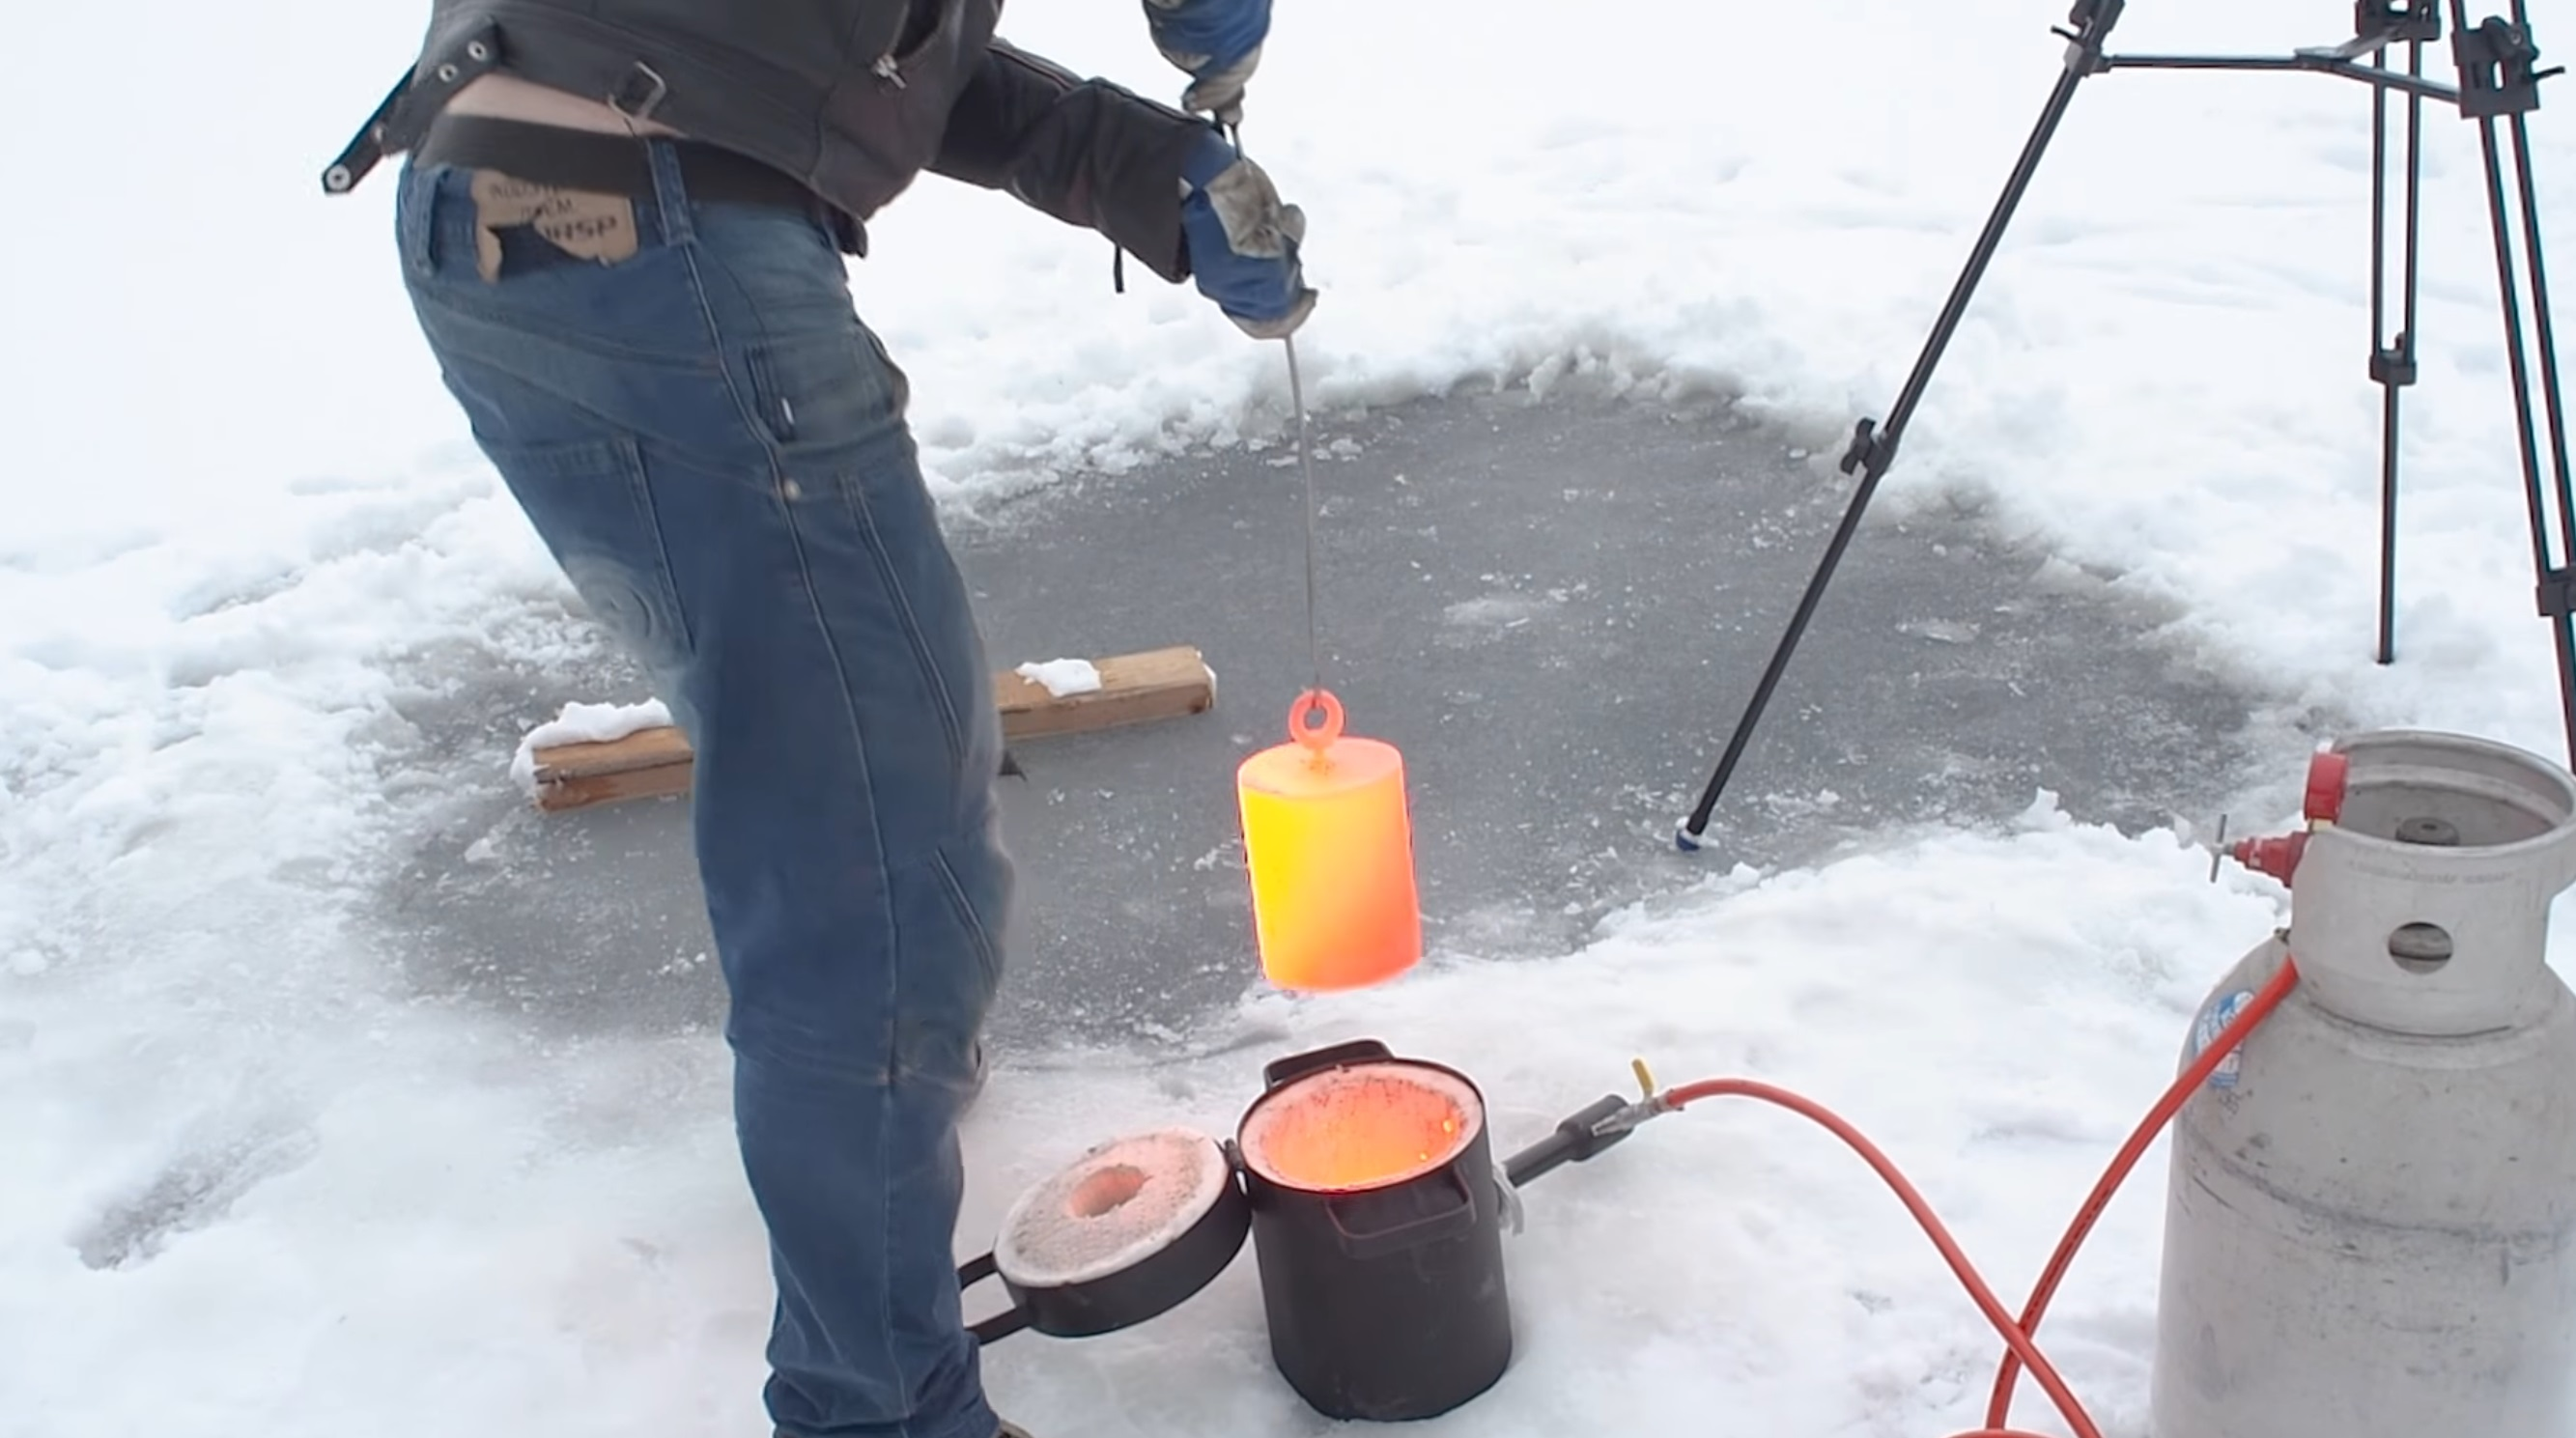 20kg Of Red Hot Steel Is Placed On A Frozen Lake In Finnish Experiment